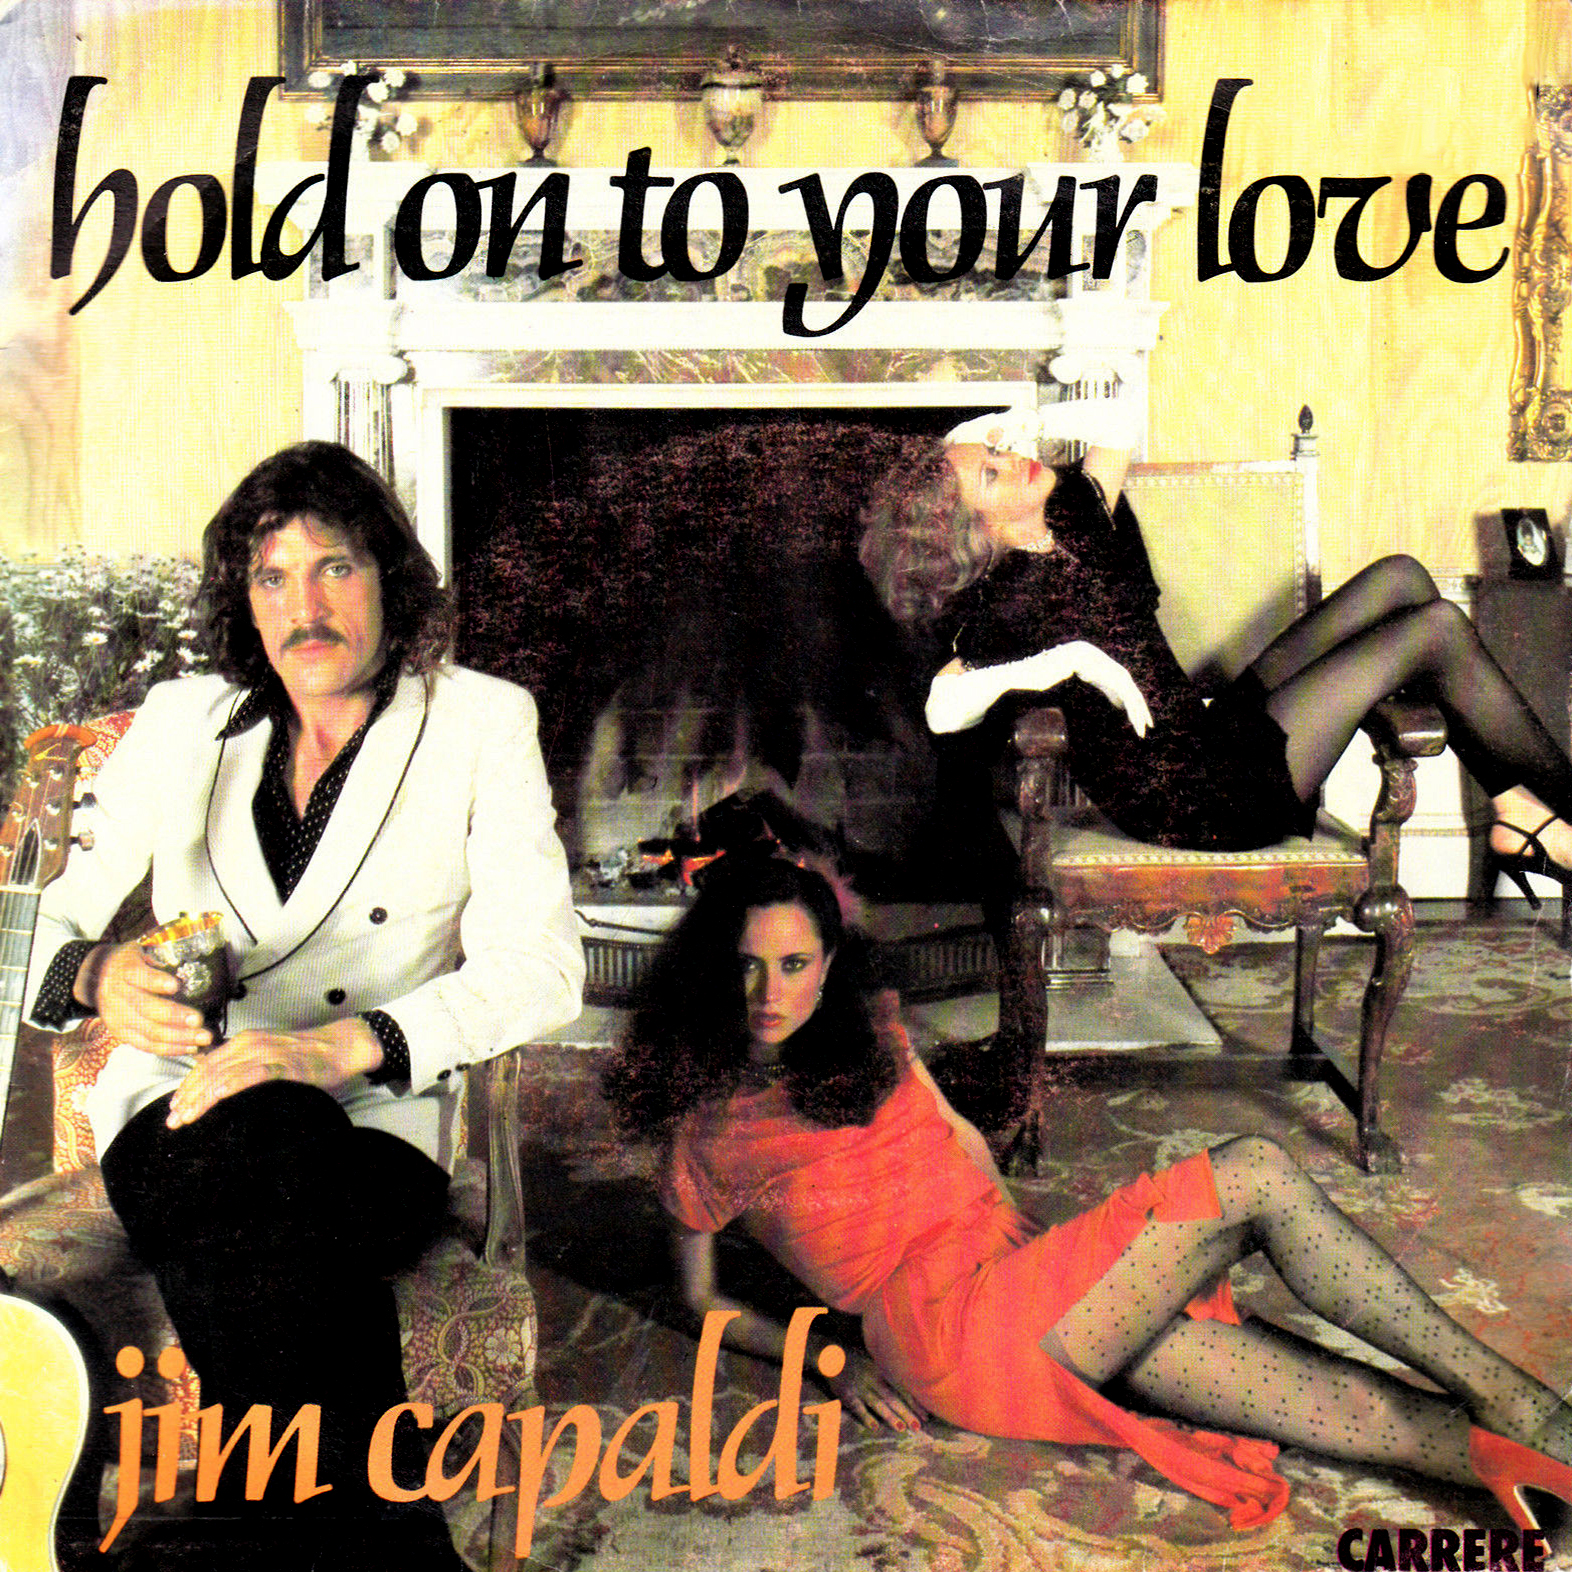 1980 (jim capaldi) record